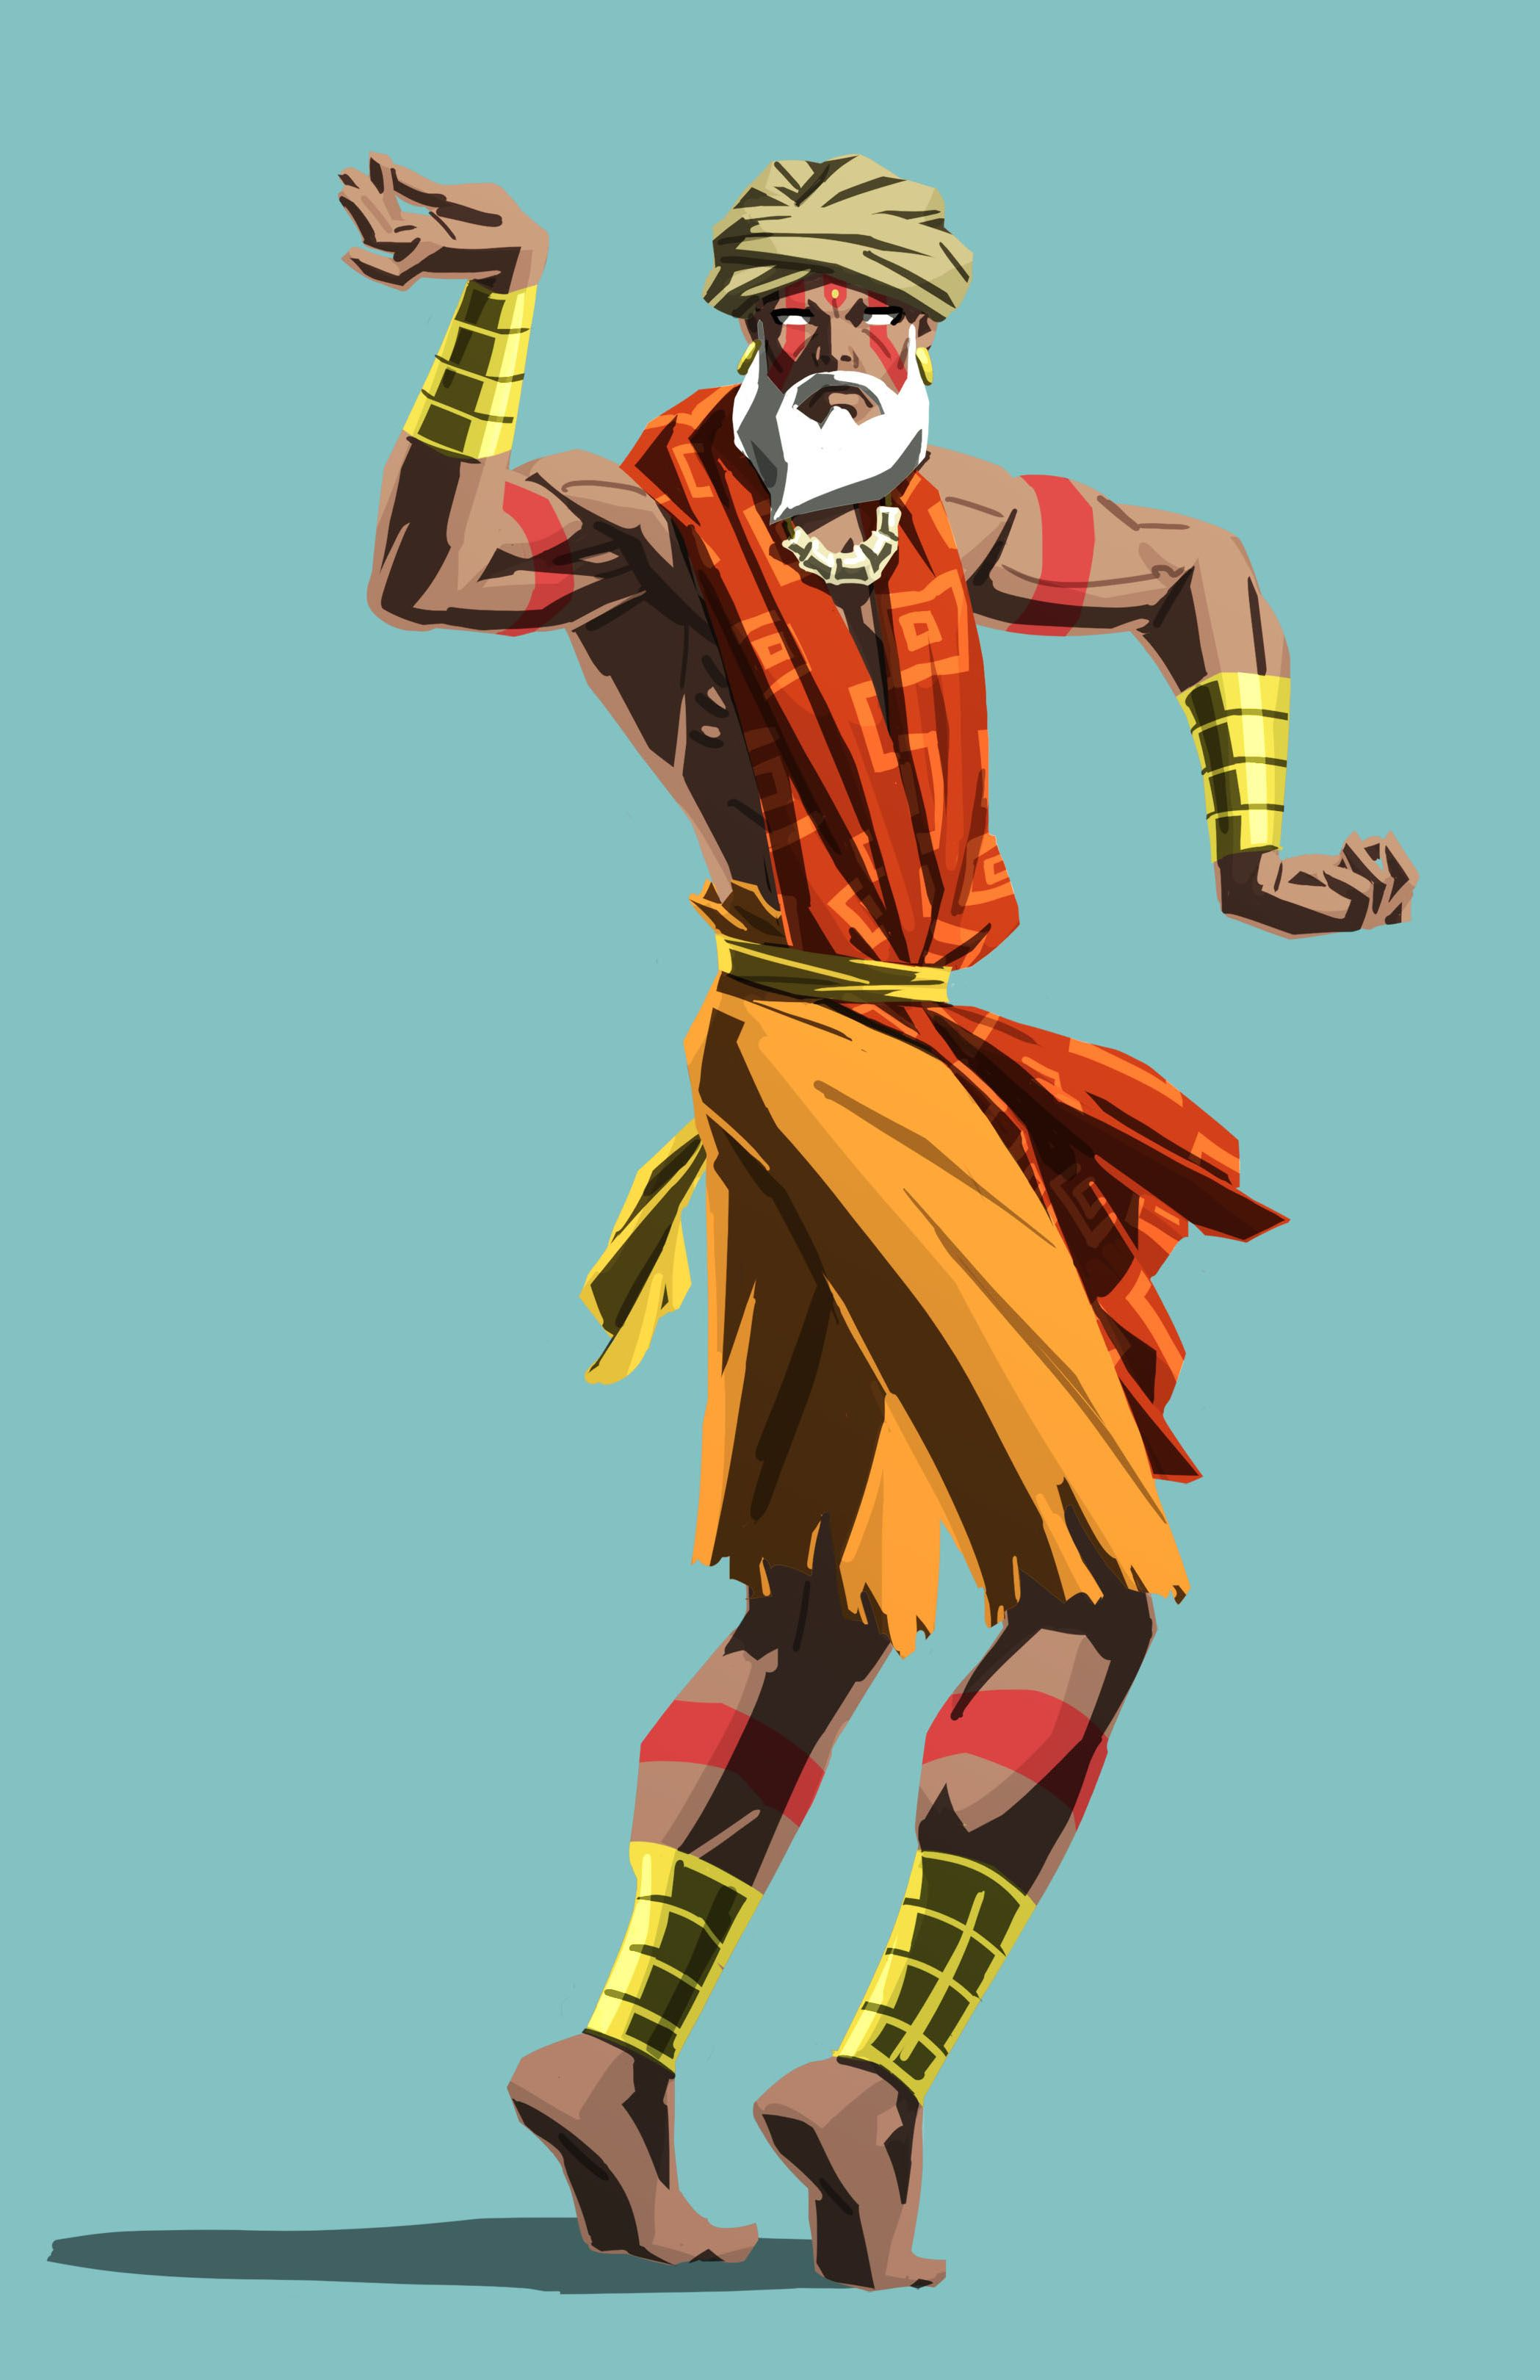 Street fighter characters dan street fighter image - Dhalsim Sfv Street Fighter V Alternate Costume Official